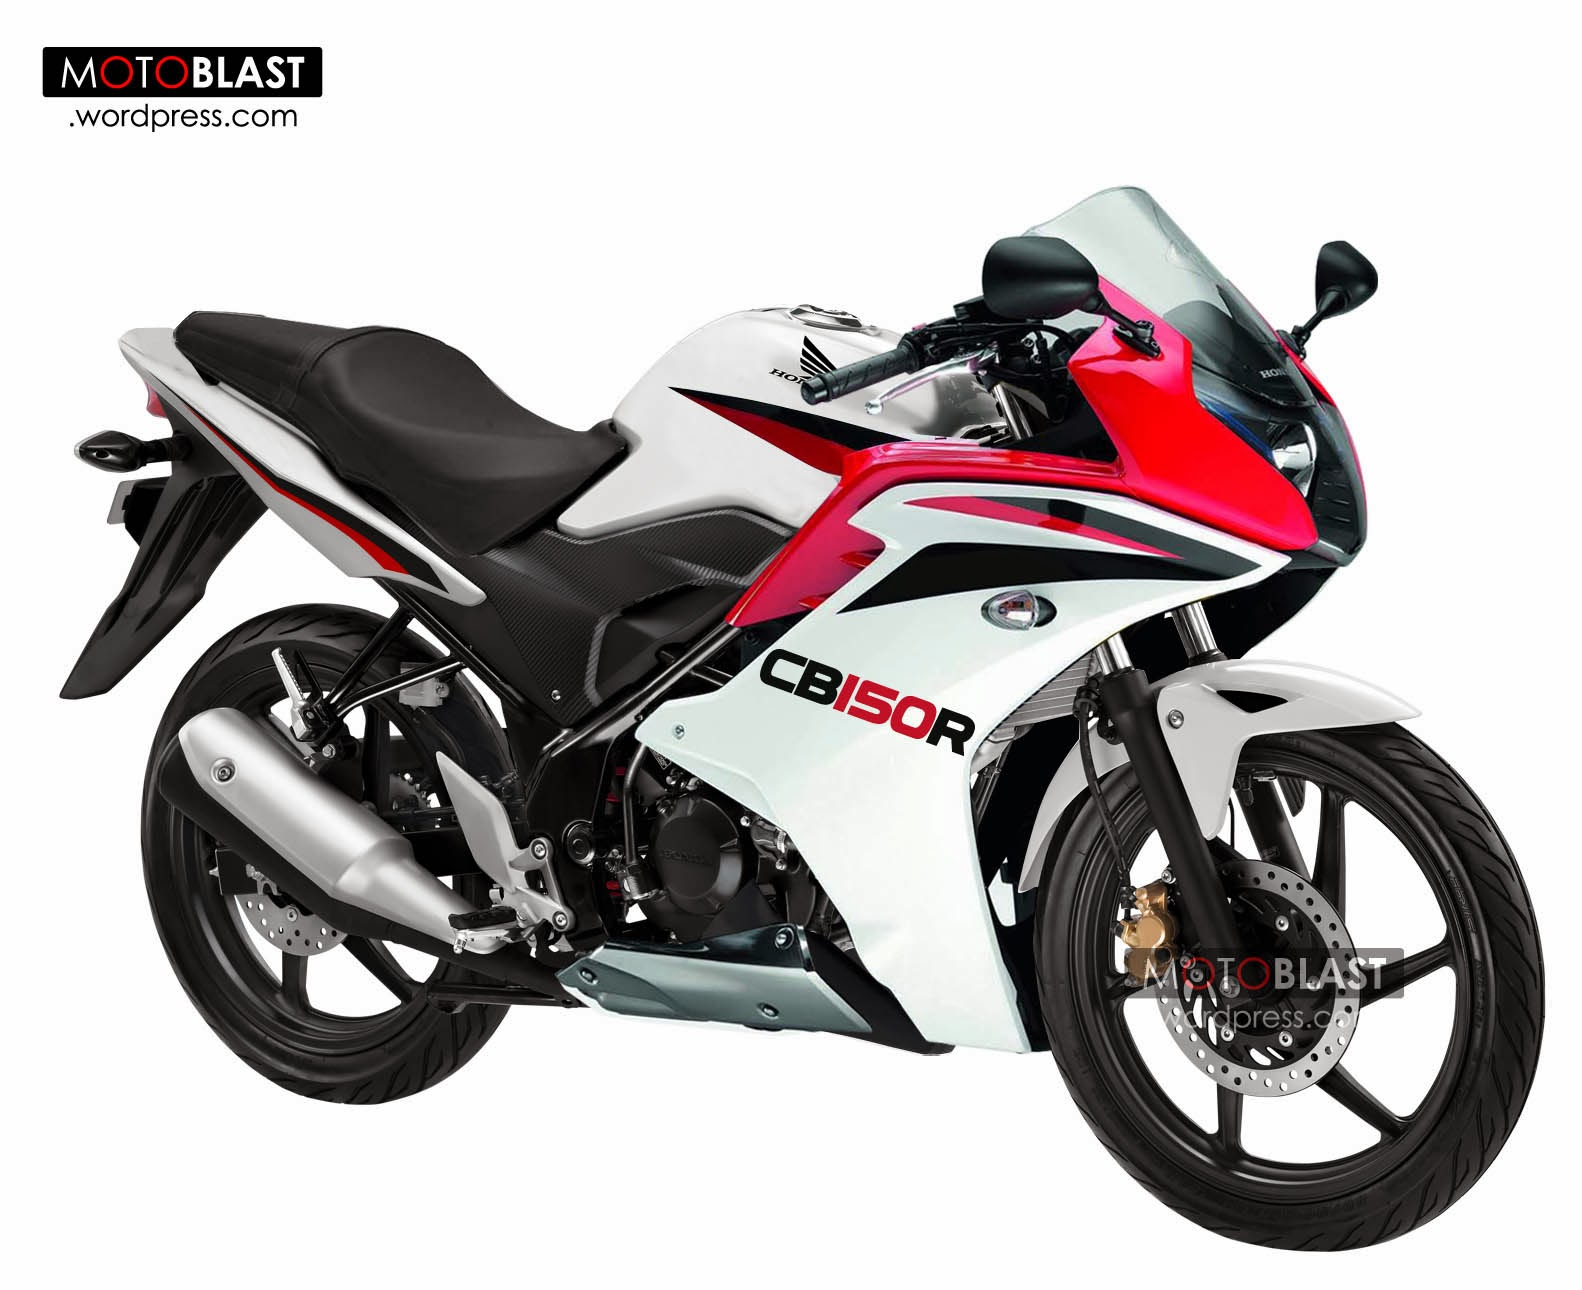 103 Modifikasi Motor Cb 150 R Warna Merah Modifikasi Motor Honda